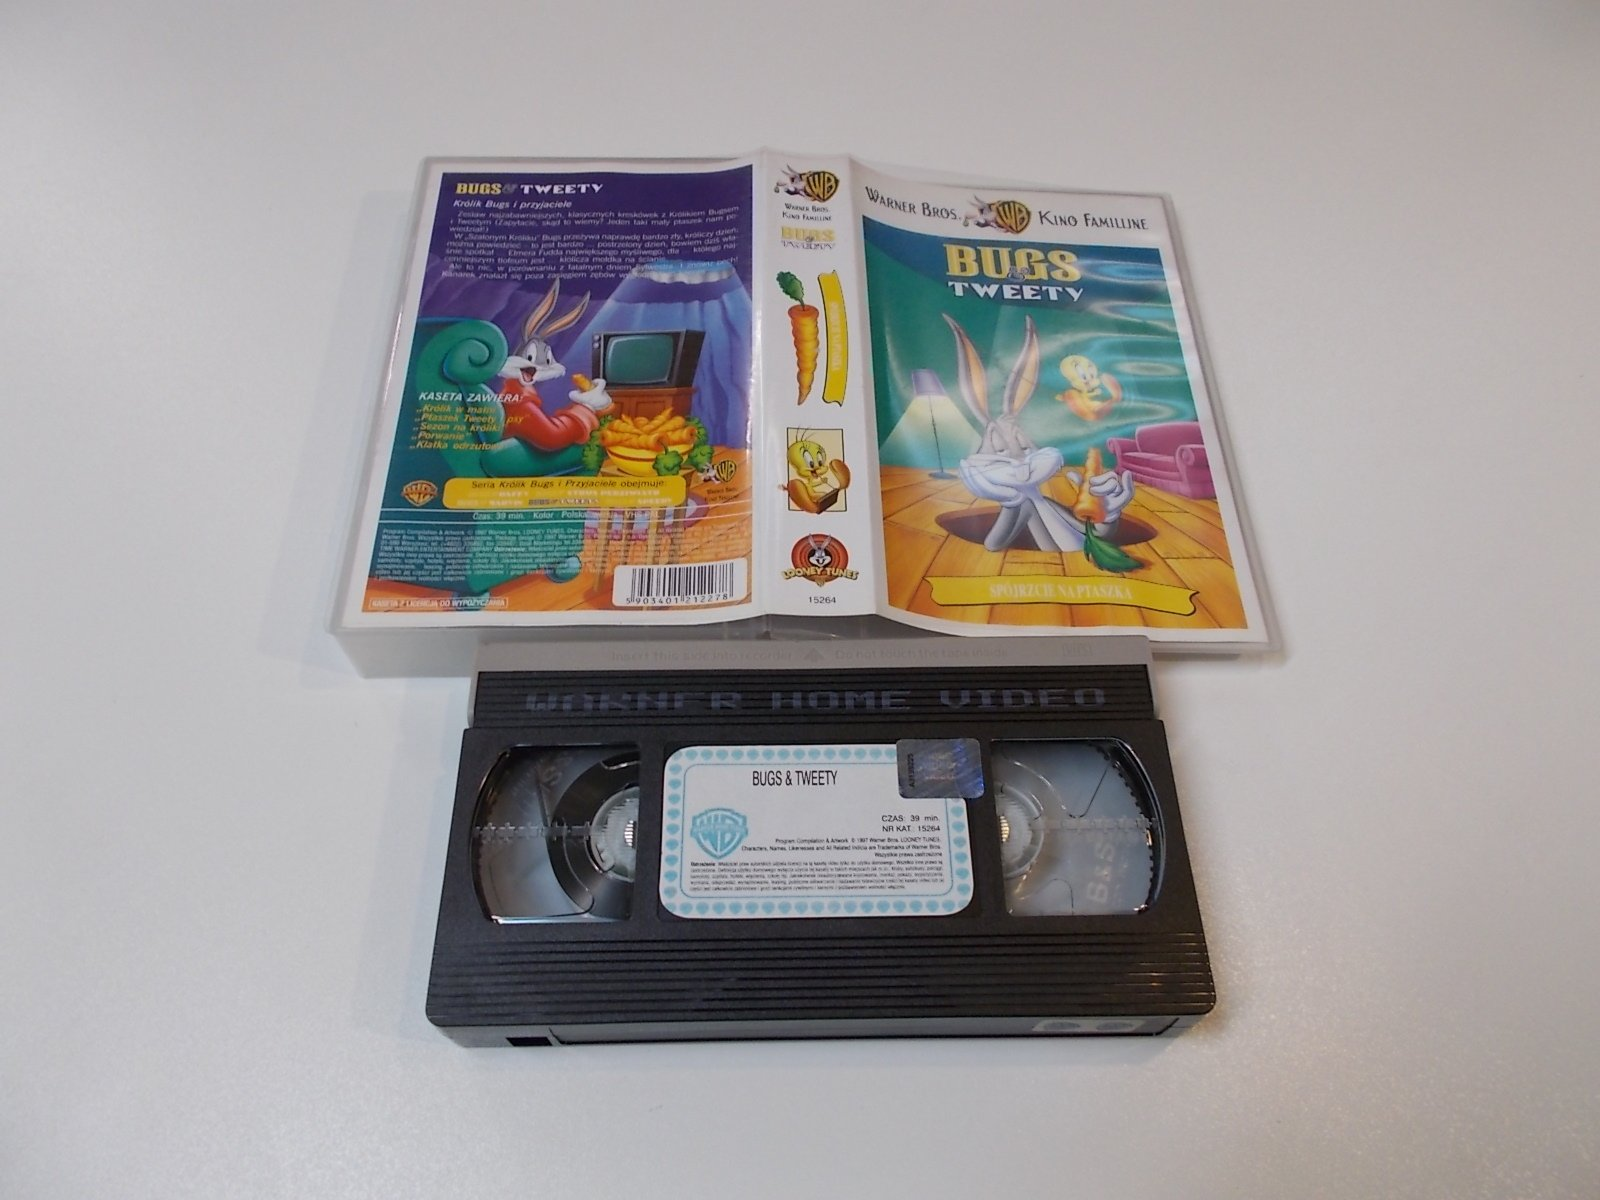 BUGS TWEETY - VHS Kaseta Video - Opole 1677